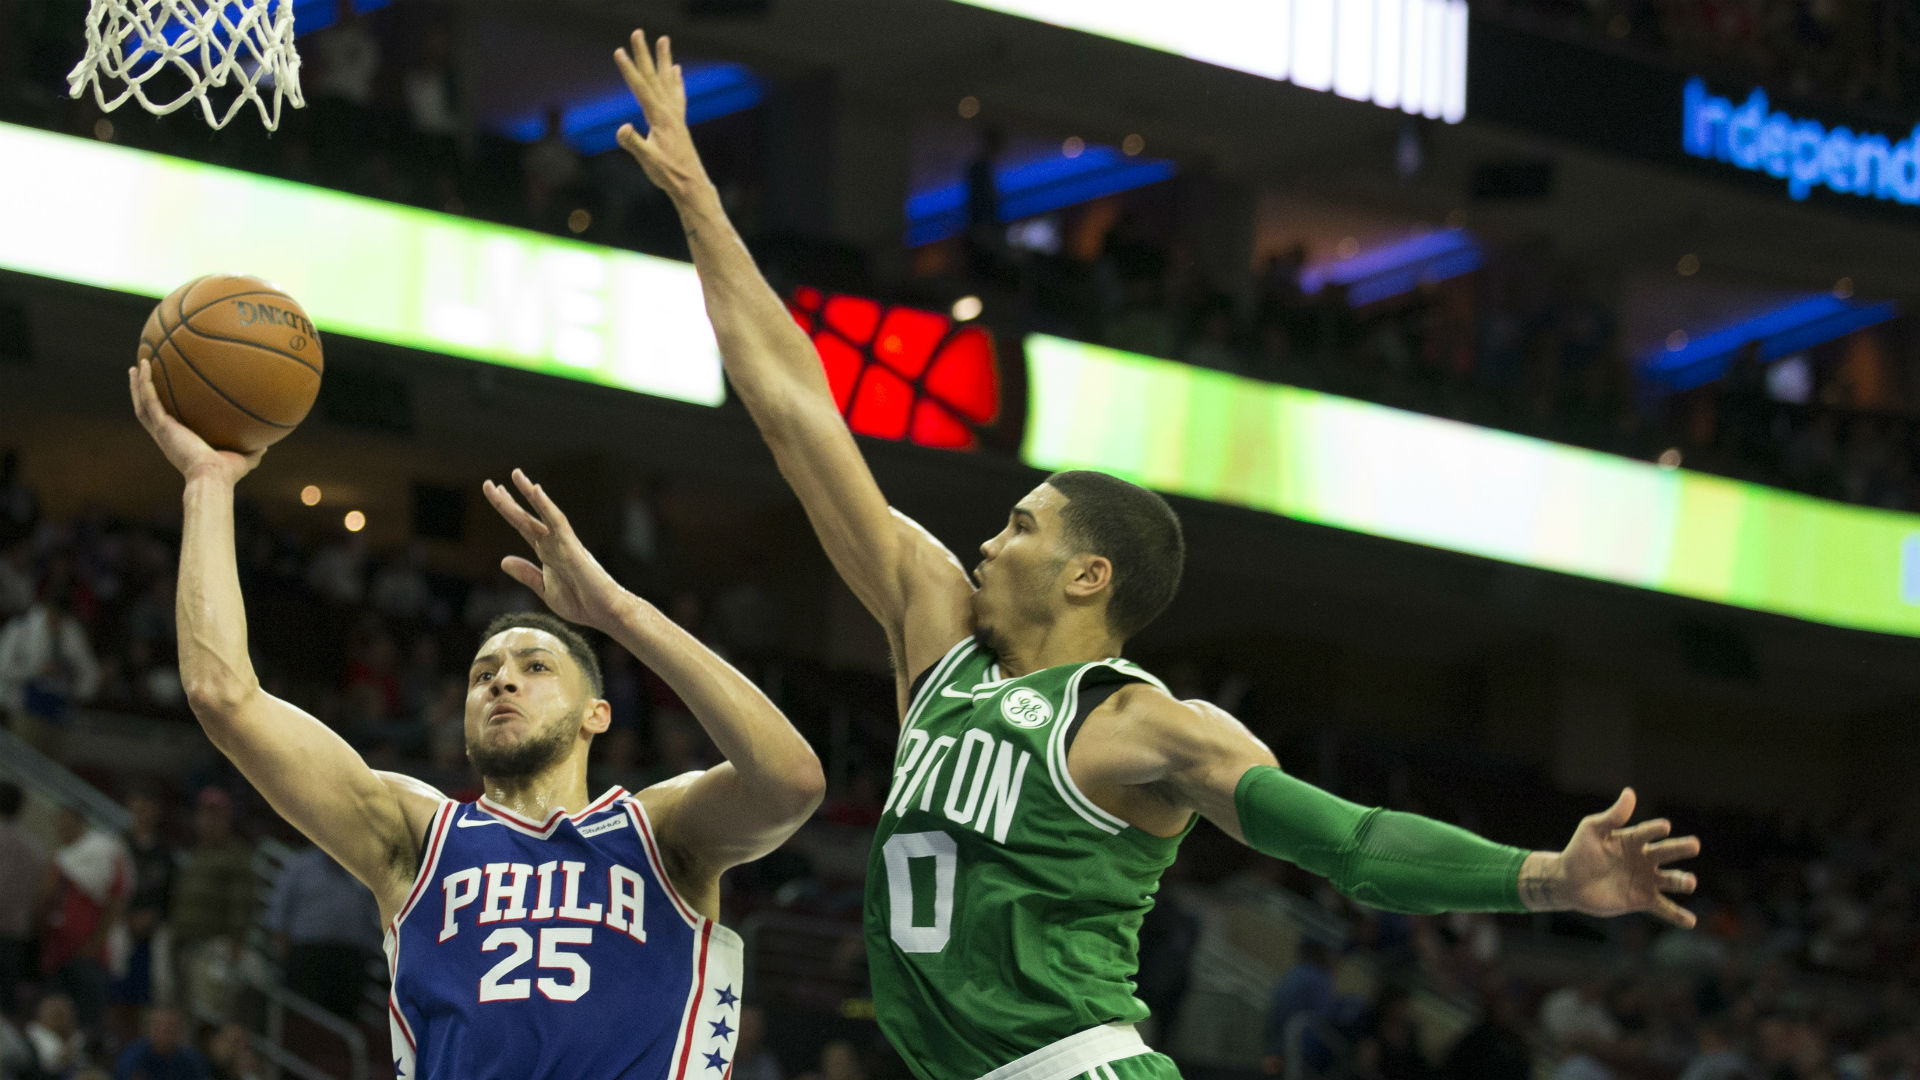 Marcus Morris plays important role in rally over Sixers — Celtics notebook